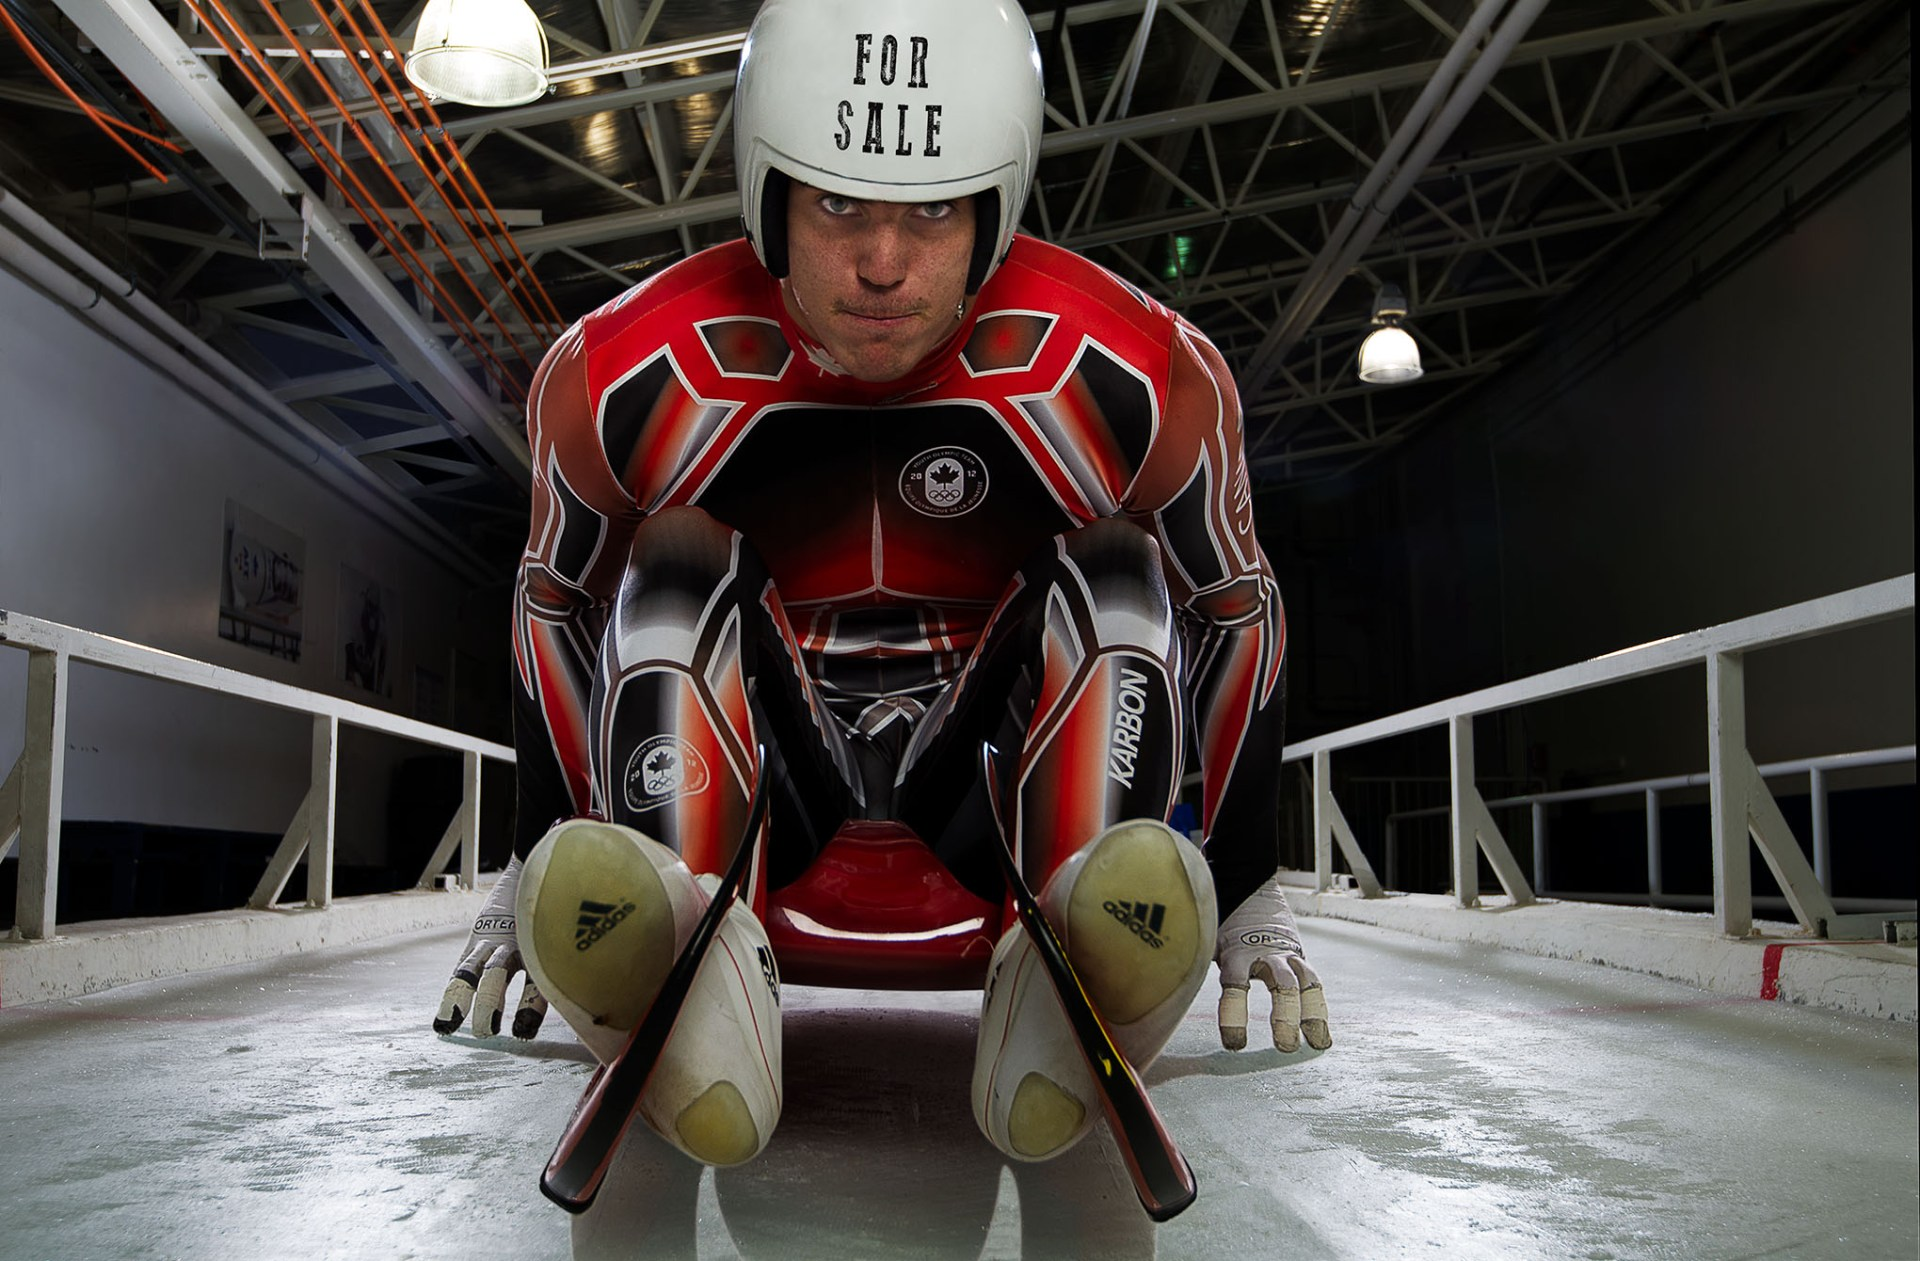 Portrait case study of Canadian Olympic Luge Athlete, John Fennell